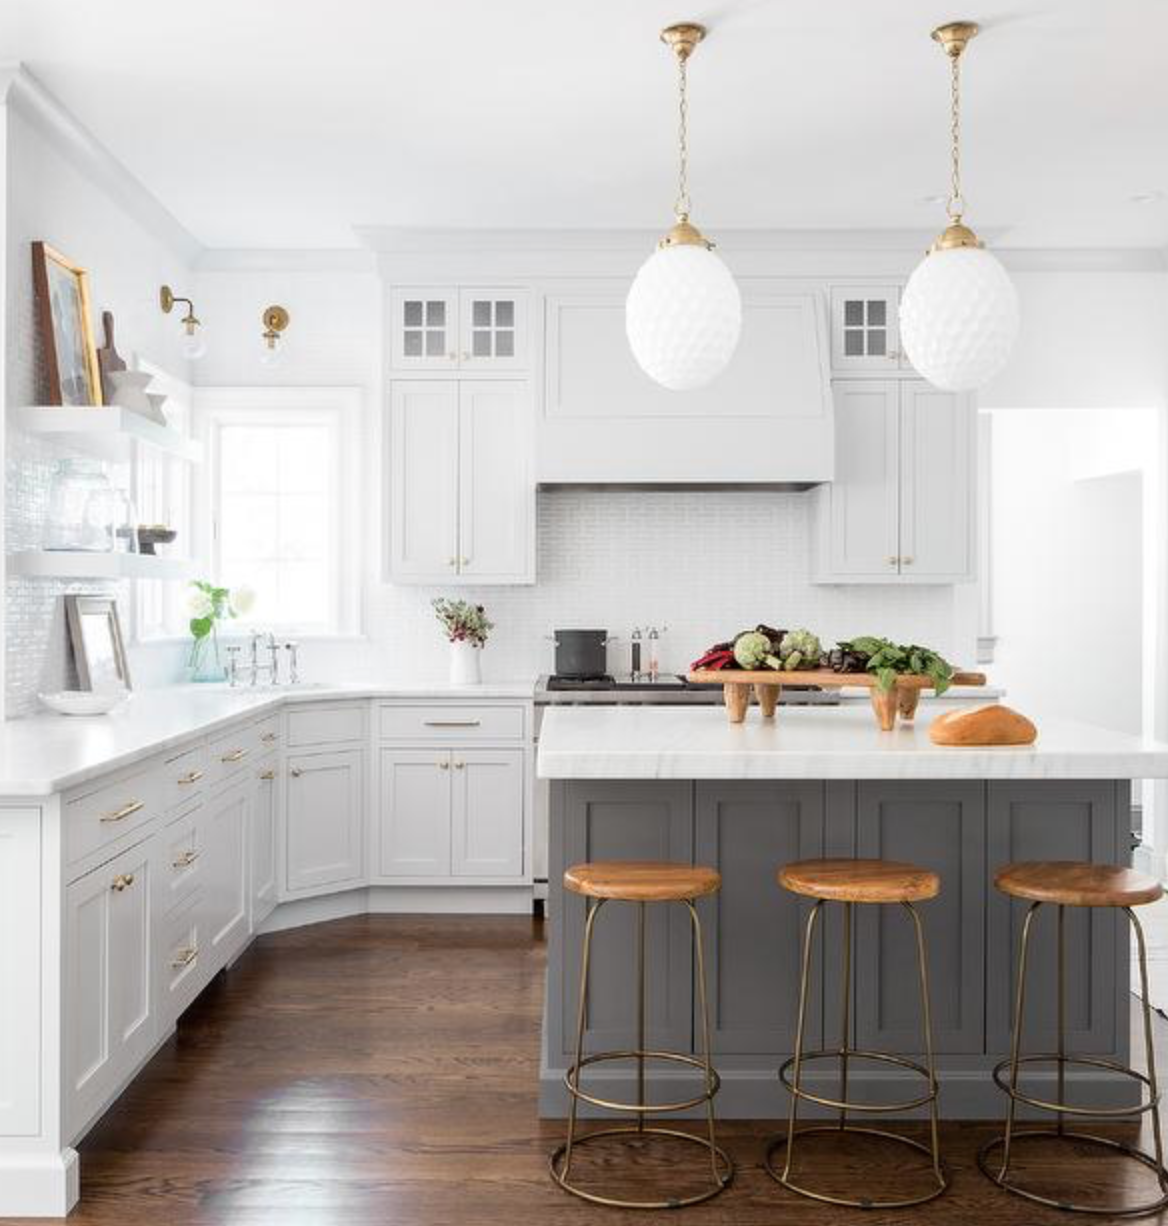 Forecast: Gray Islands Are Taking Over White Kitchens, and We Predict Sunny Feelings for Everyone   Hunker